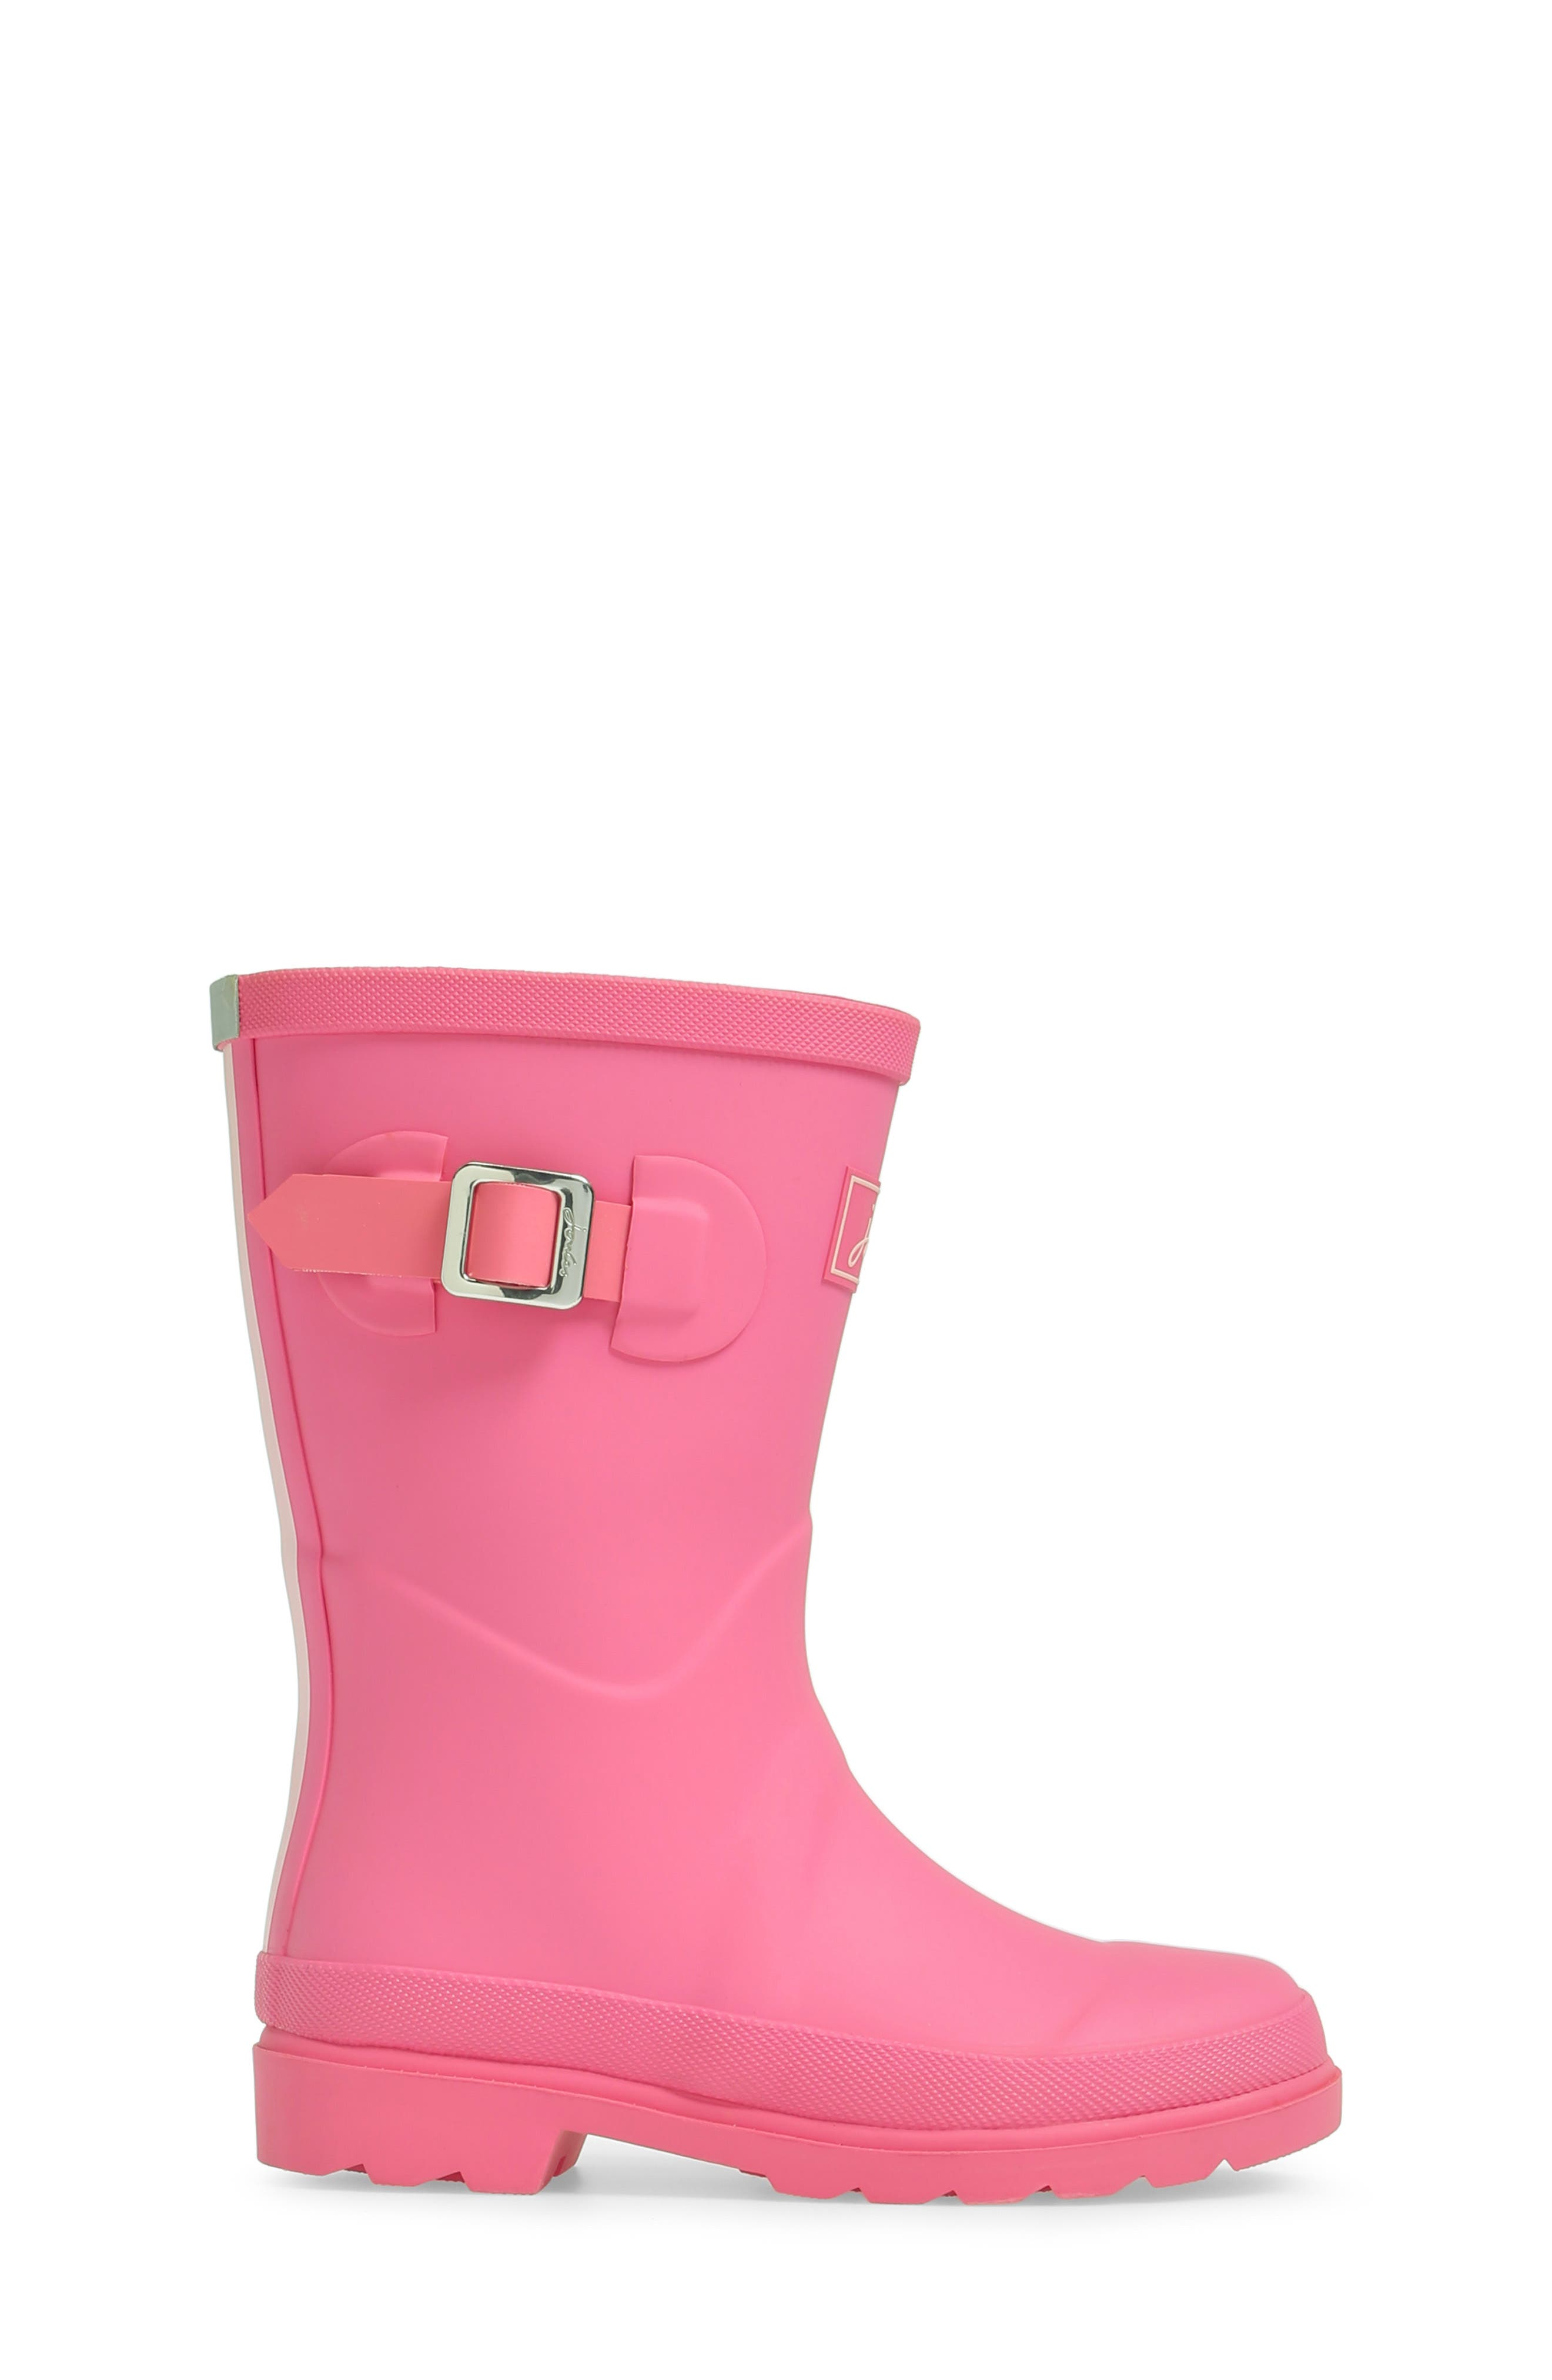 Welly Matte Waterproof Rain Boot,                             Alternate thumbnail 3, color,                             665